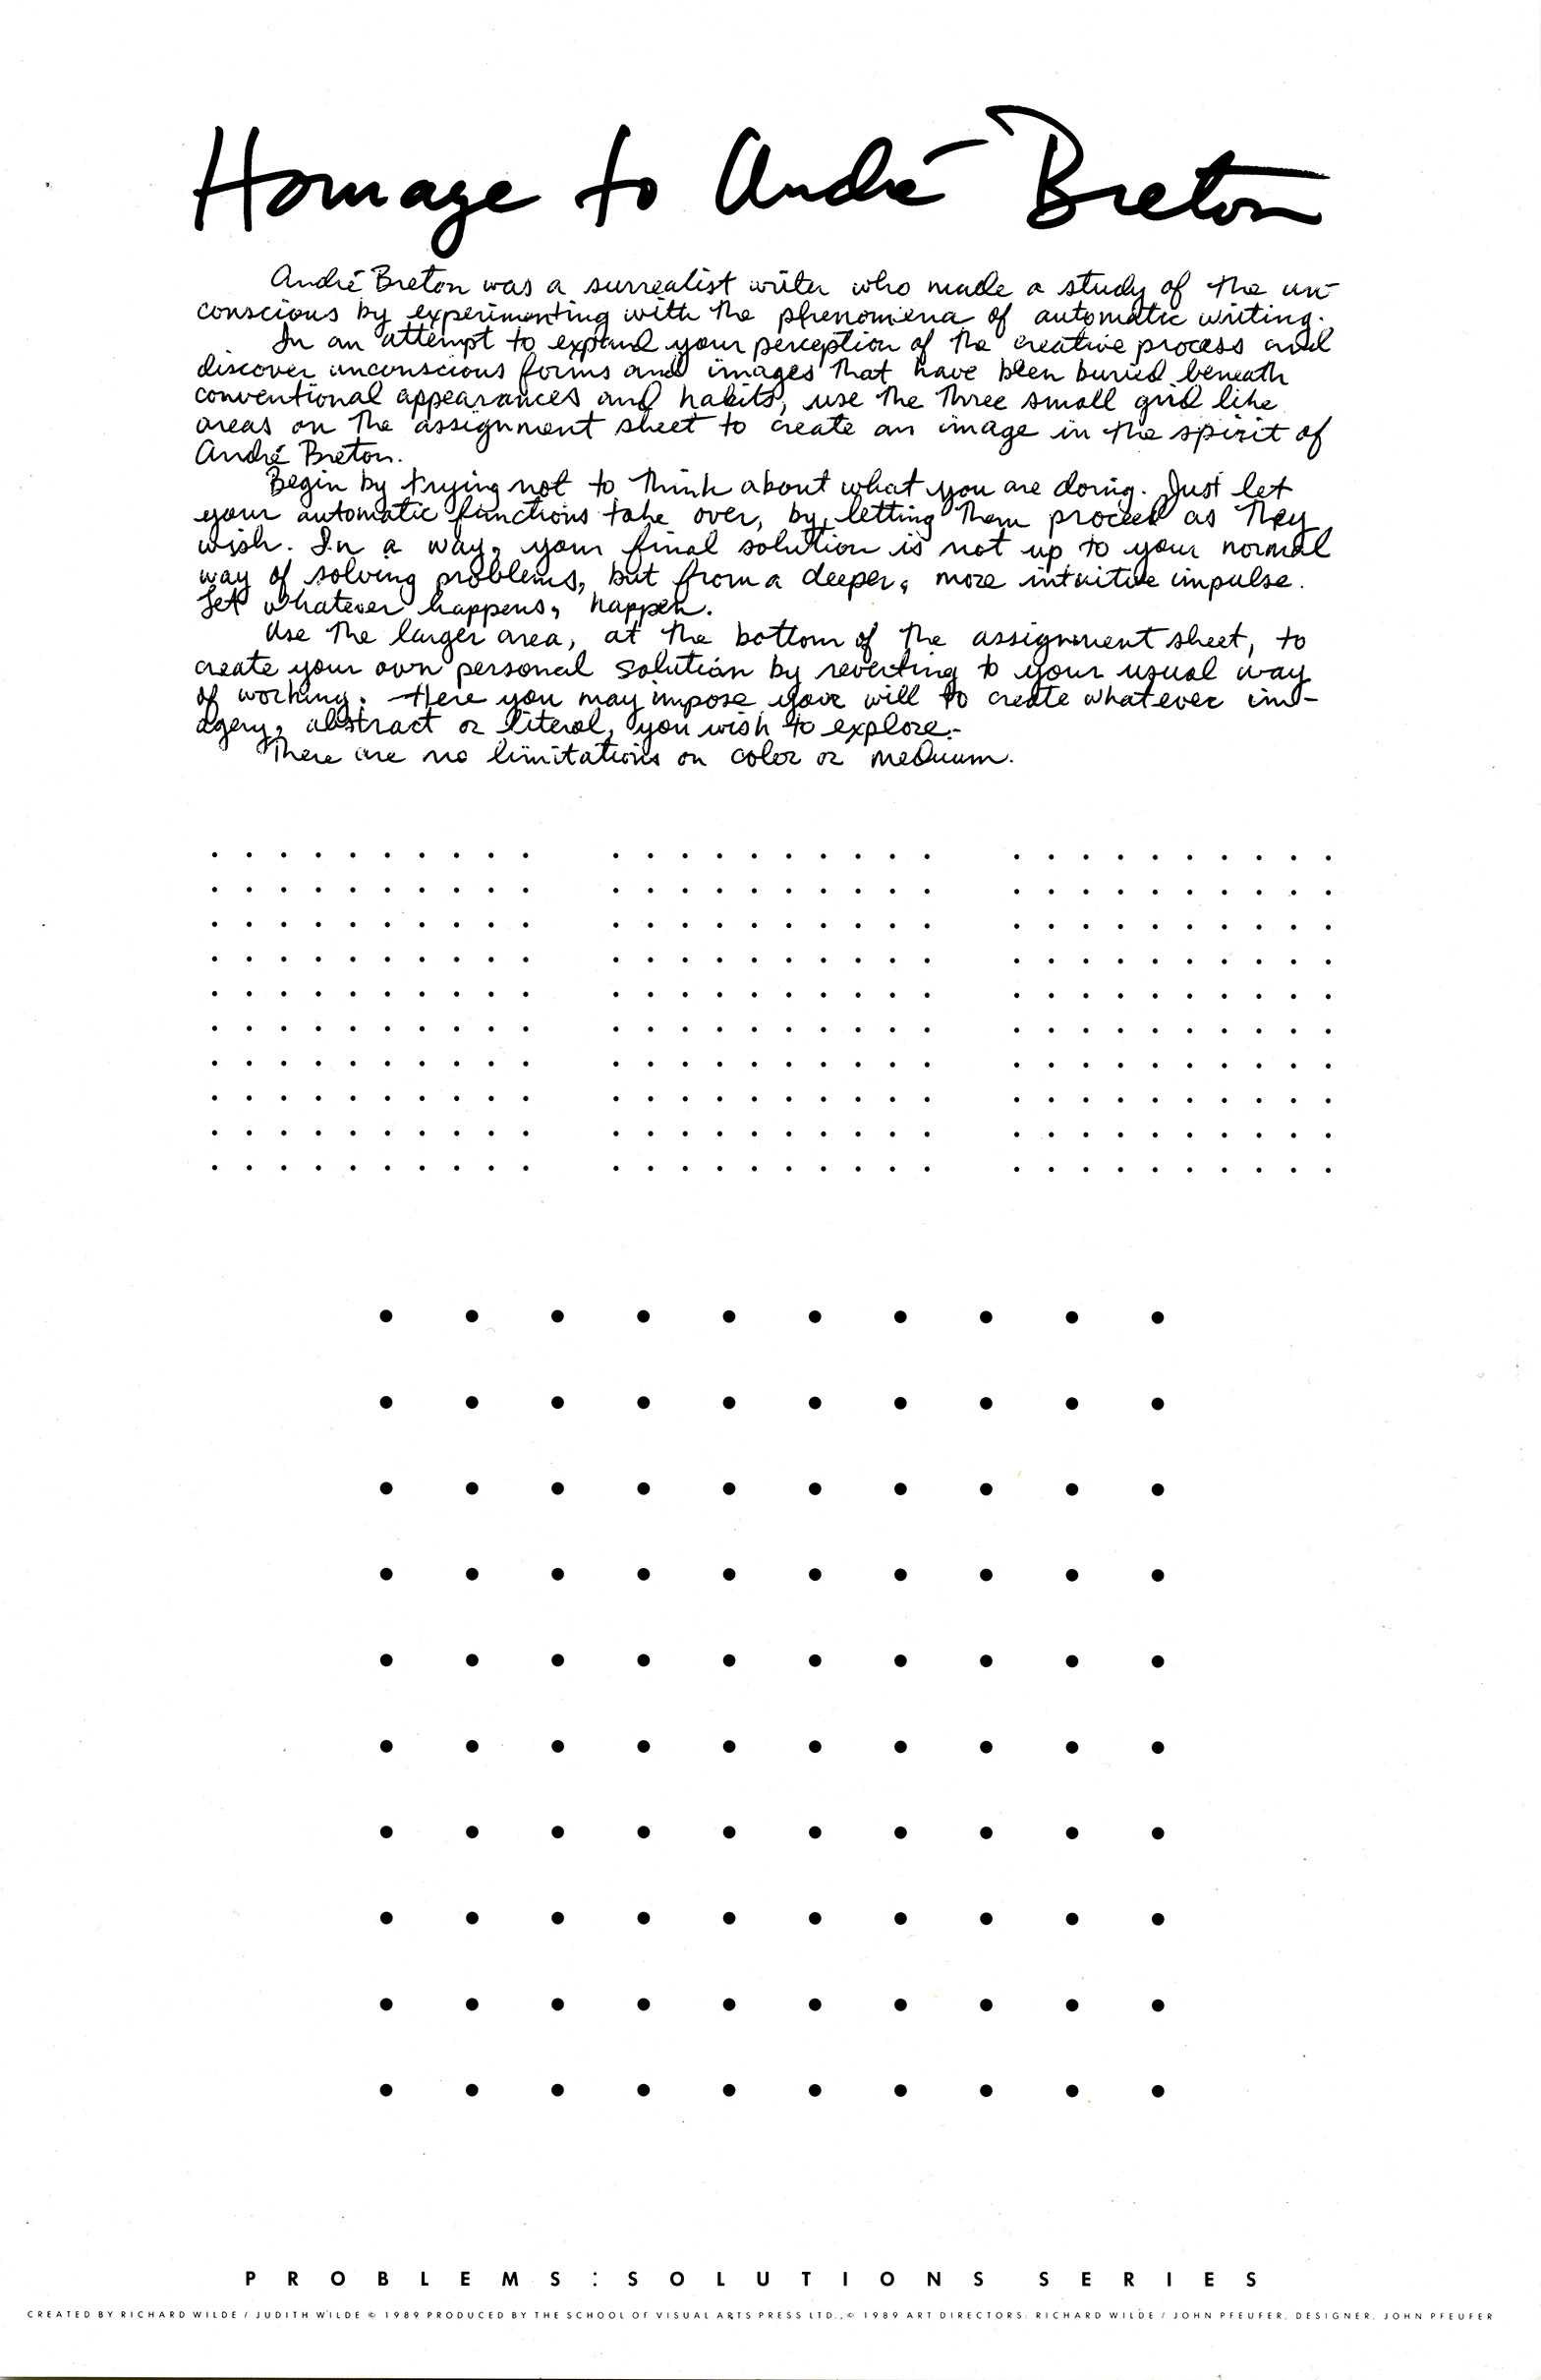 Homage to Andre Breton poster with explanatory text and dots forming three squares. Students are asked to use the dot grids to create image in the spirit of Breton.